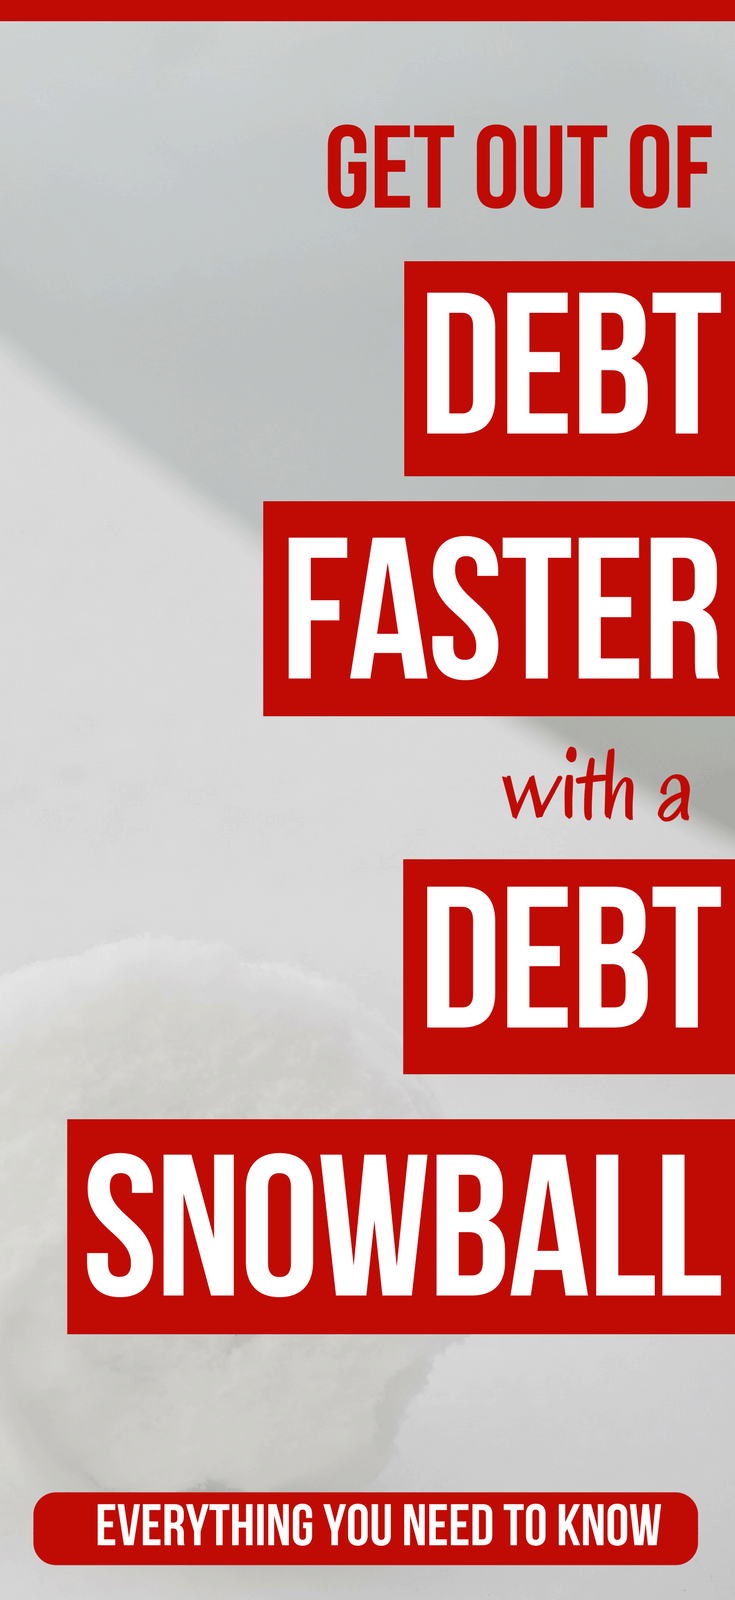 The Debt Snowball Method Explained: A Quick-Start GuidePay off your debt faster with the debt snowball method. Here's everything you need to know to get started right now.debt snowball method dave ramsey | how to get out of debt with a debt snowball | debt snowball motivation tips#thewaystowealth #debt #debtfree #daveramsey